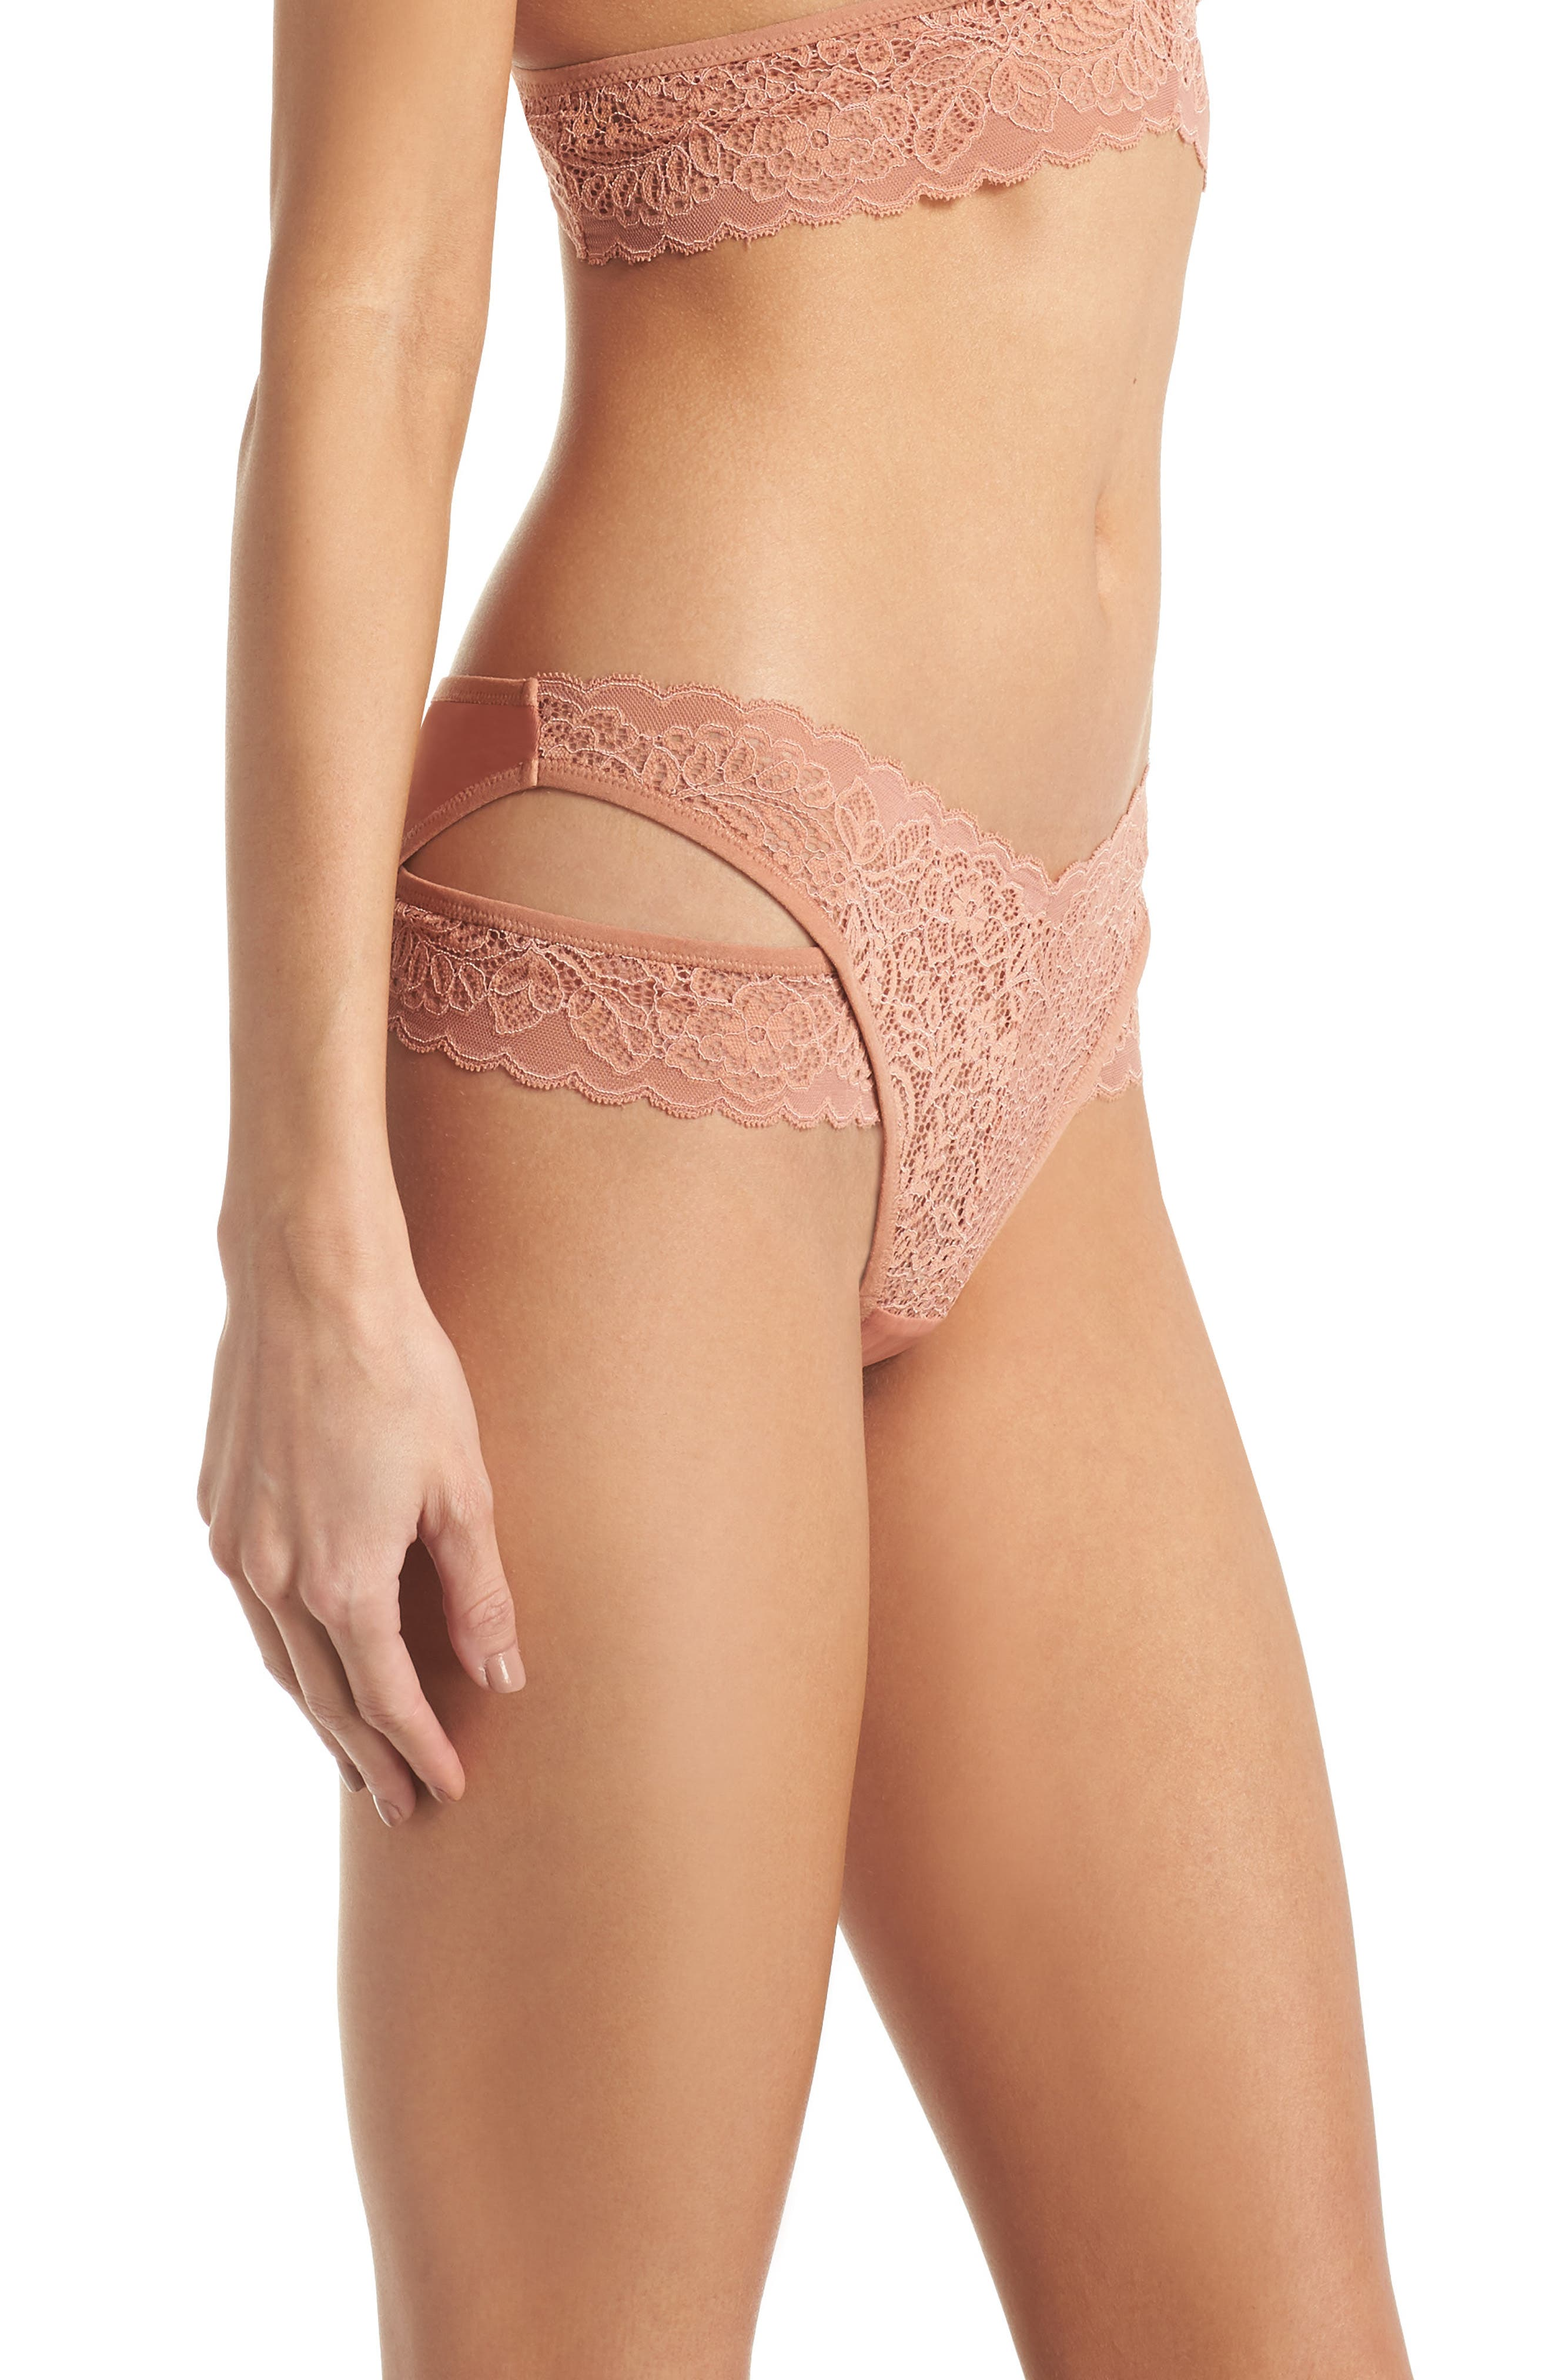 THISTLE & SPIRE,                             Thistle and Spire Marcy Briefs,                             Alternate thumbnail 3, color,                             950